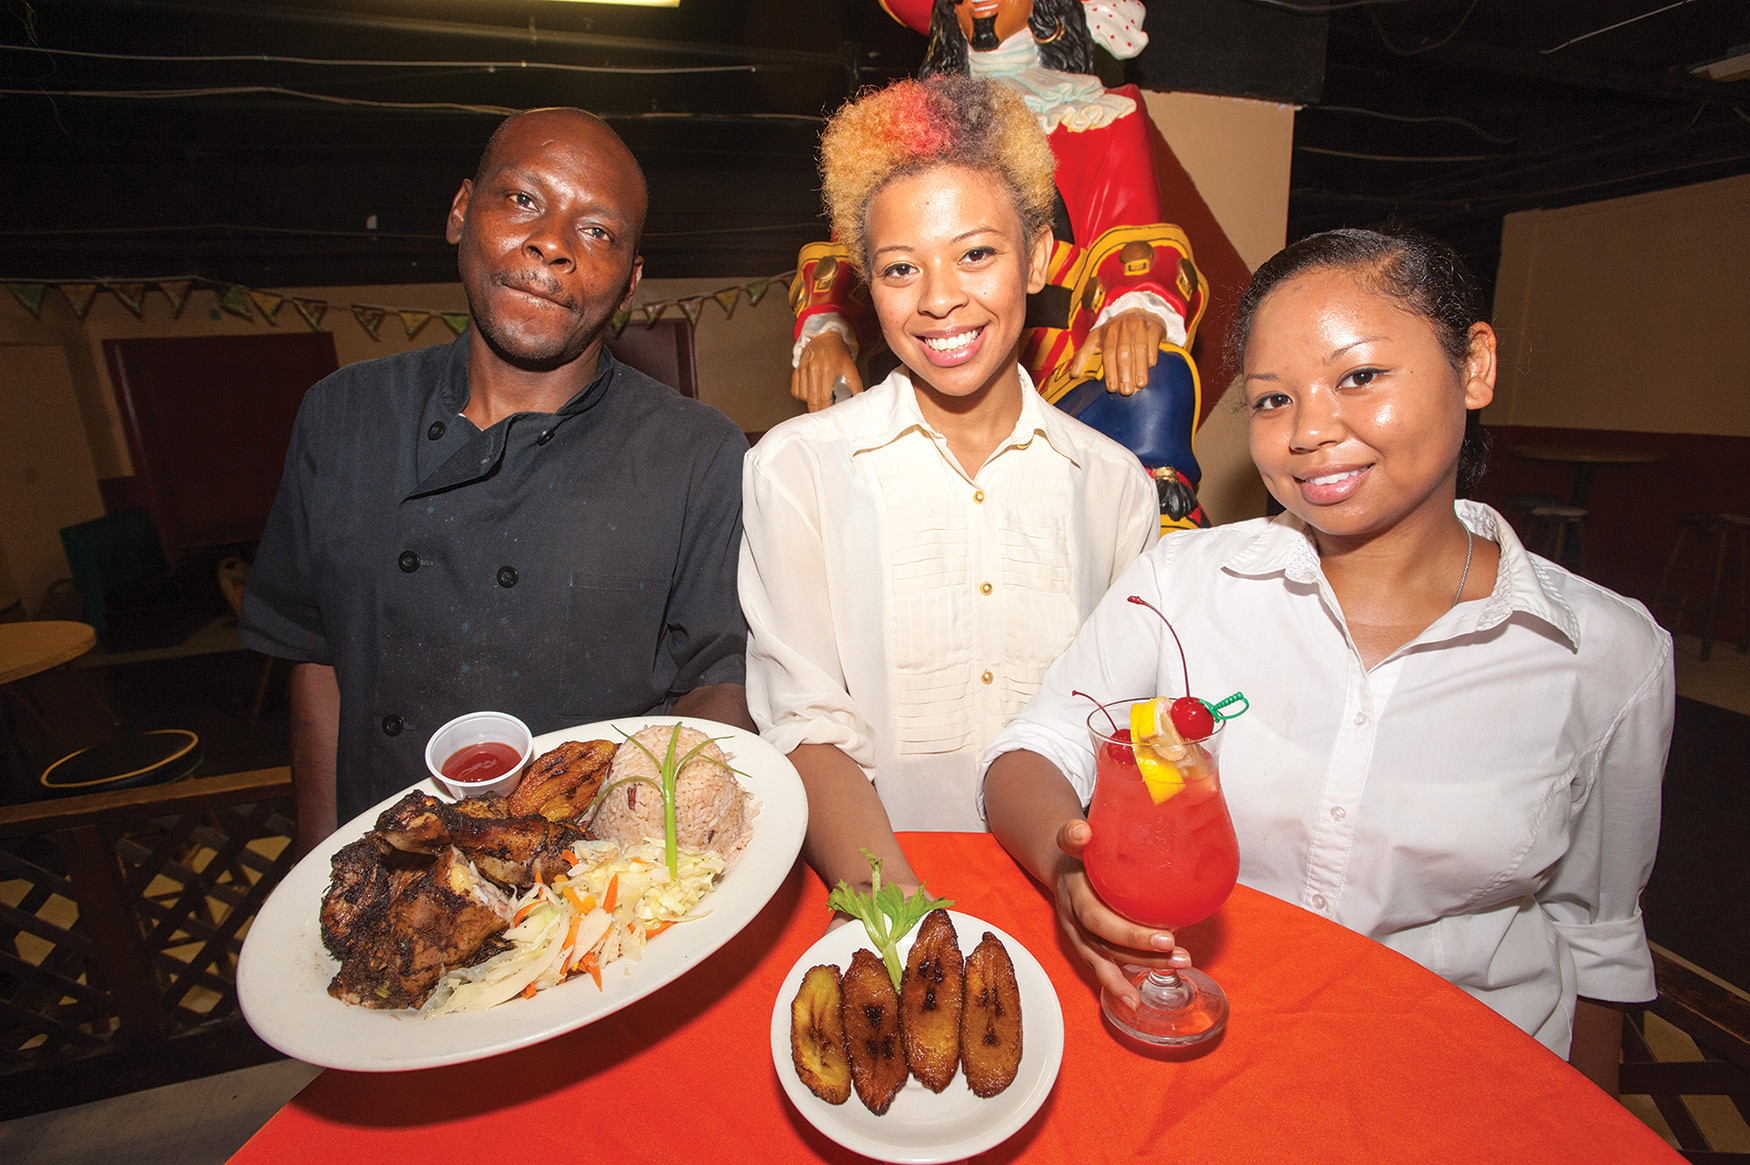 Chef Richard Powell, Christine Harris and Mimi Prejean of Da Real Ting Café Downtown present their signature jerk chicken with beans and rice, a plate of fried plantains and a glass of rum punch.